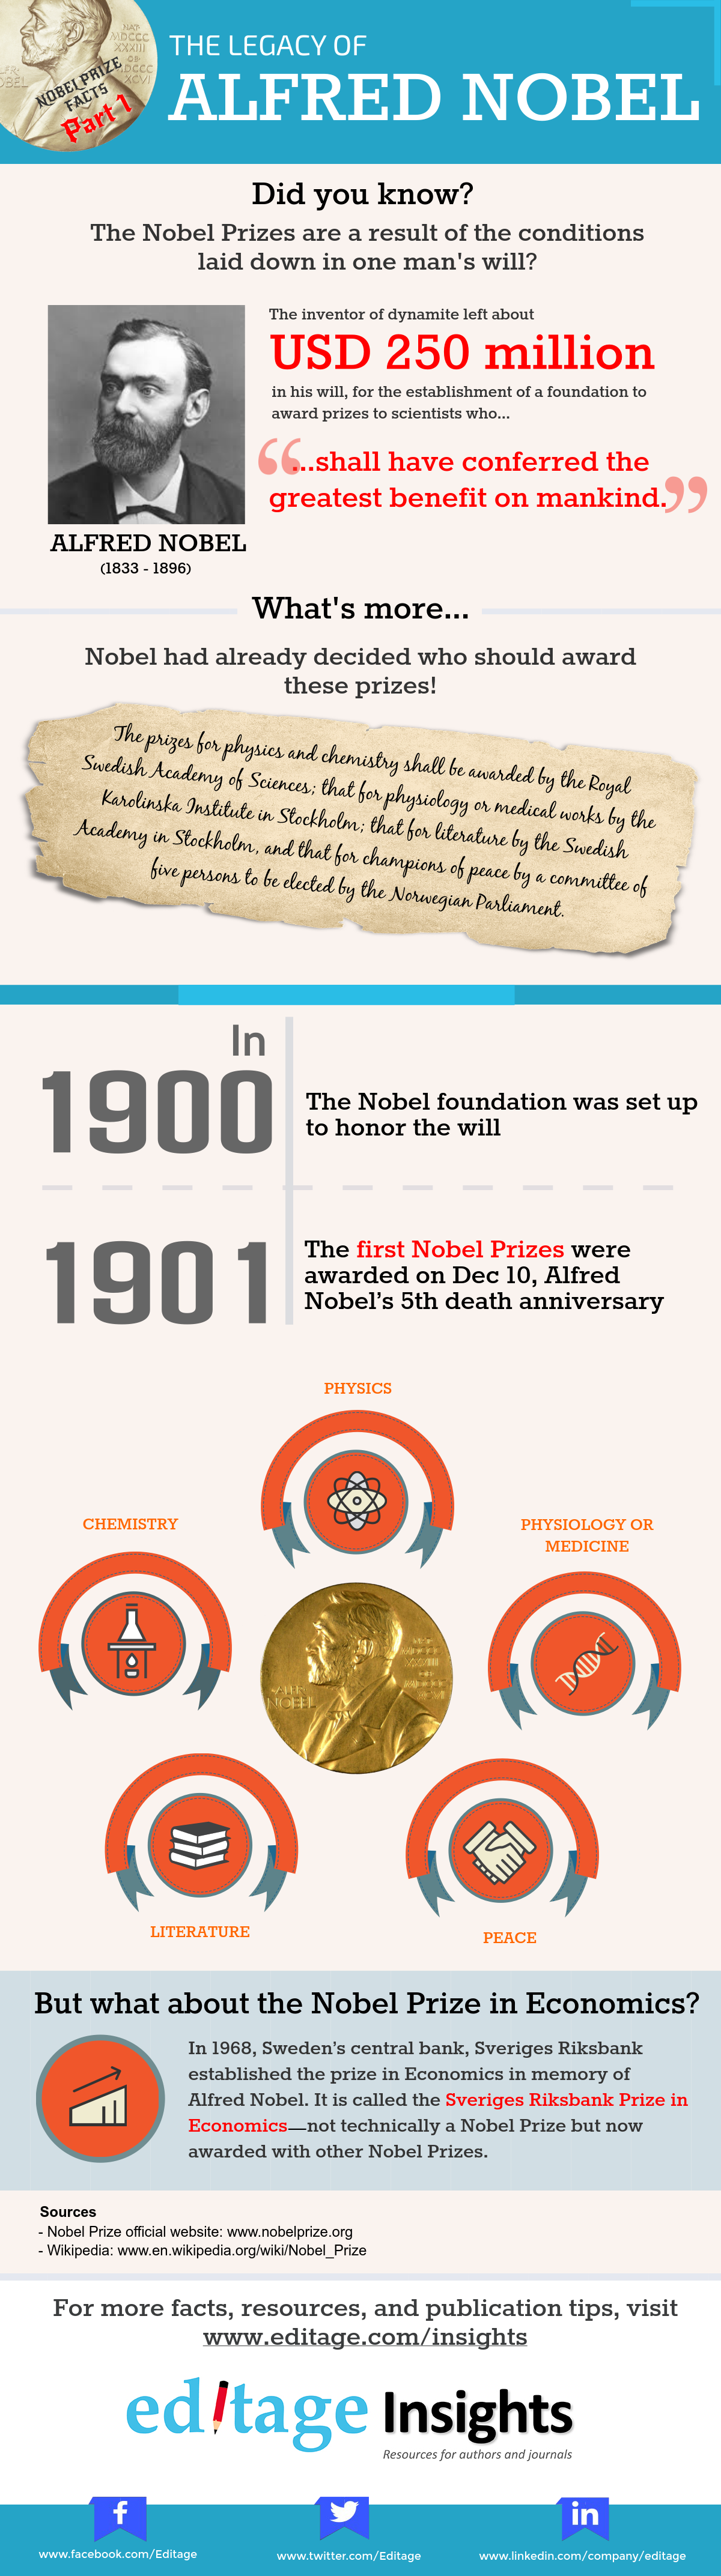 The legacy of Alfred Nobel and how it all began